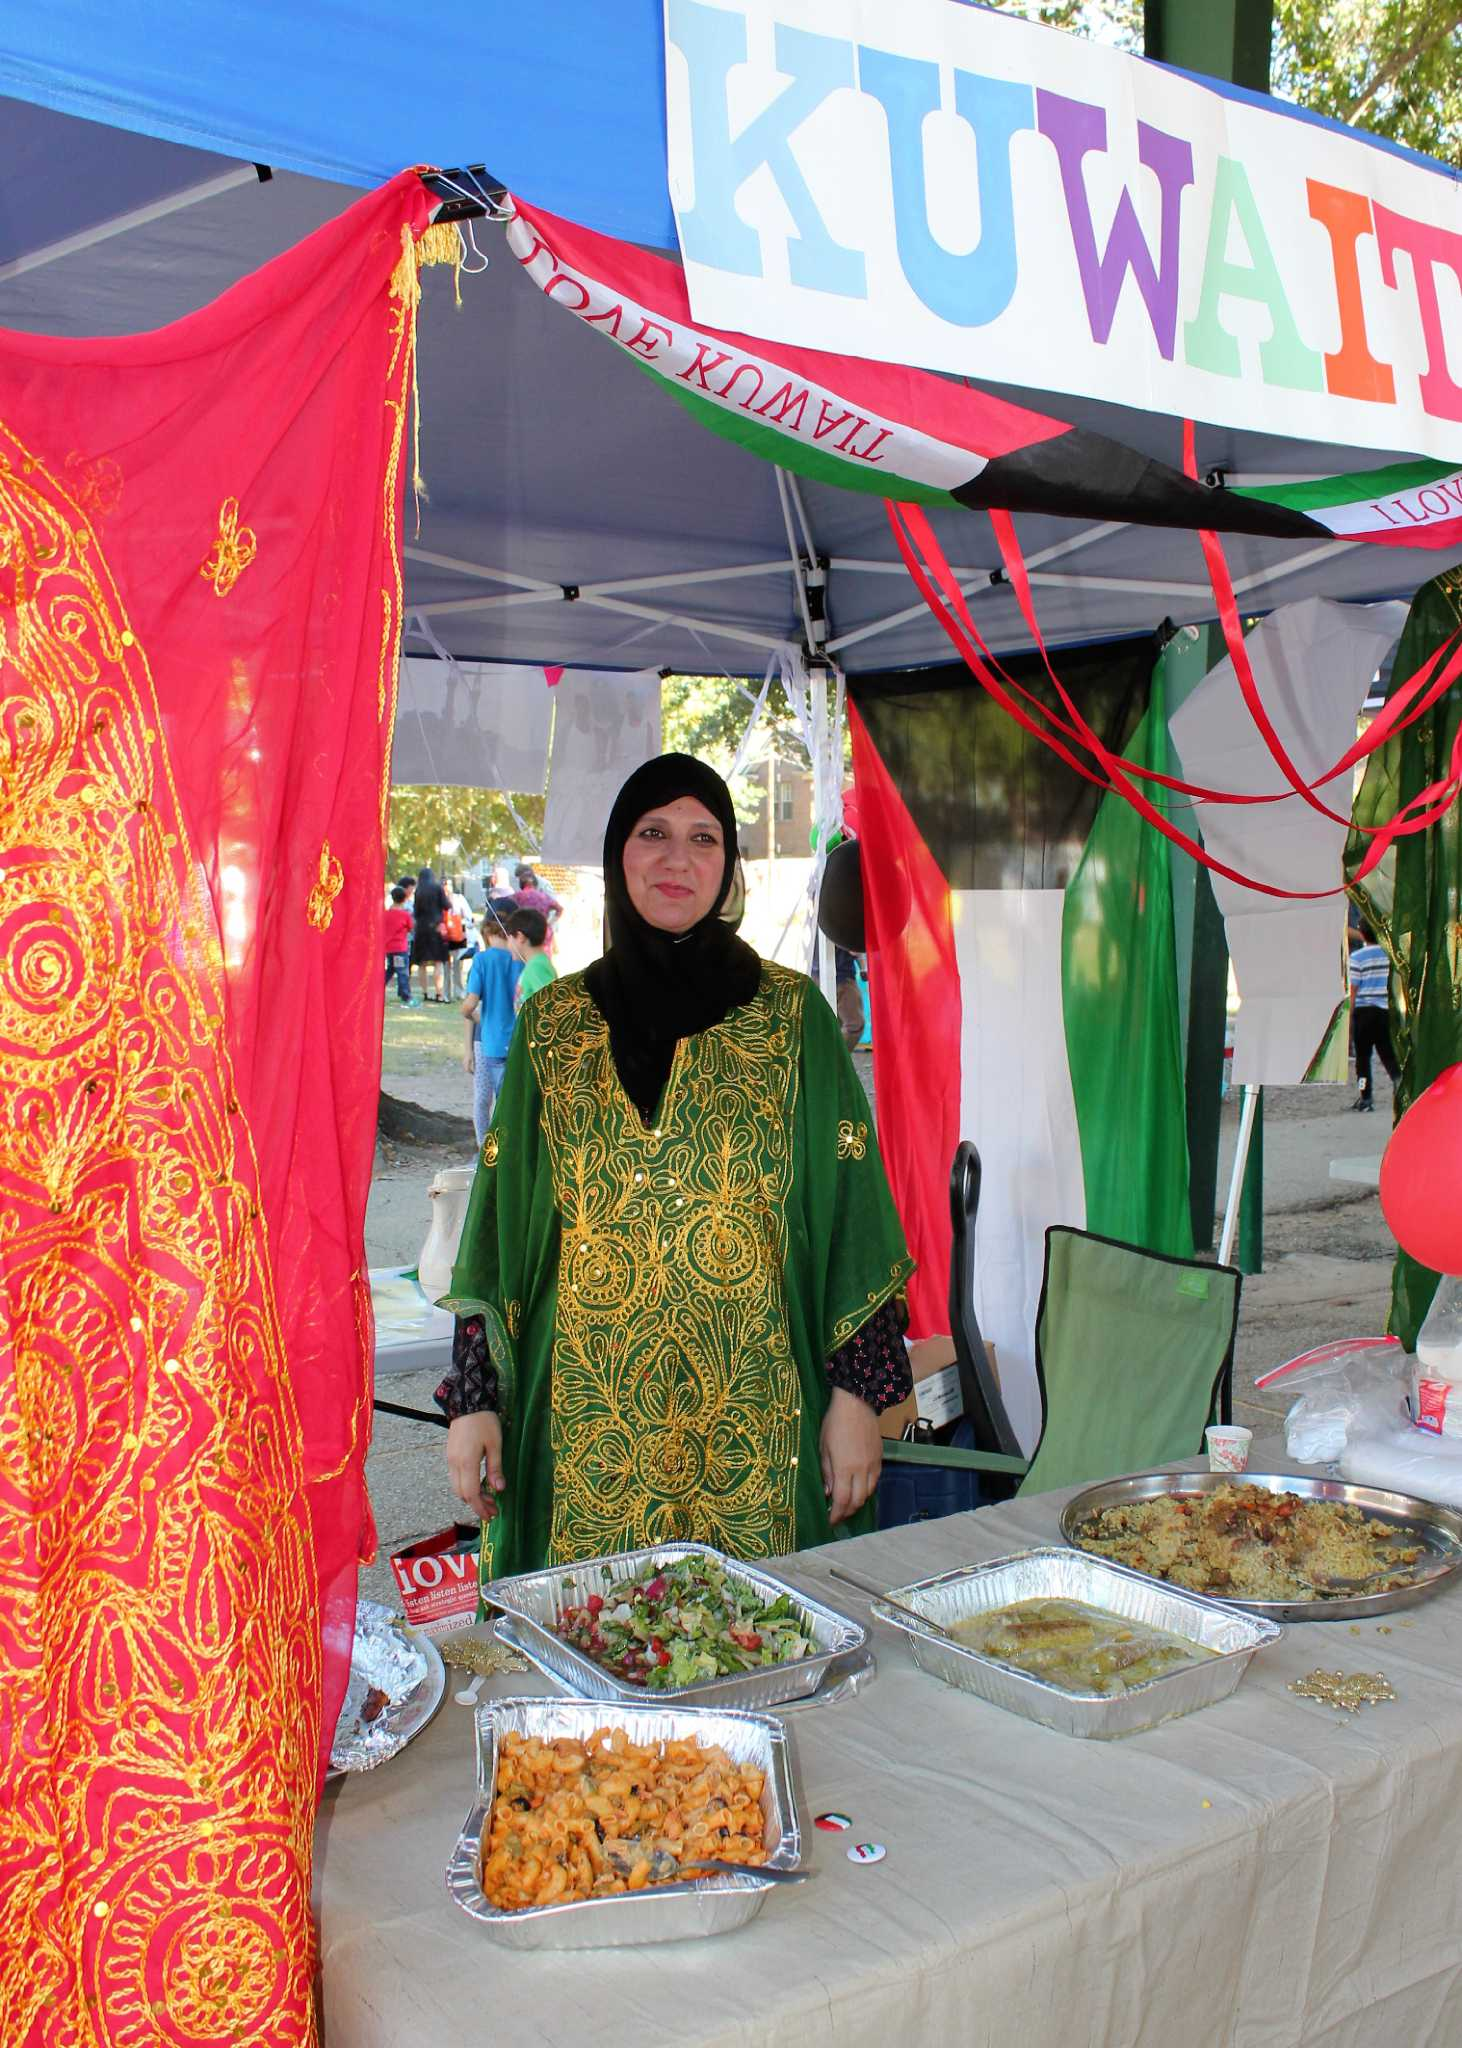 cultural diversity in my neighborhood Free cultural diversity papers, essays cultural diversity asian culture - every culture has its own views of health care, diseases both in scope and diversity the area has witnessed a literal boom in population growth.